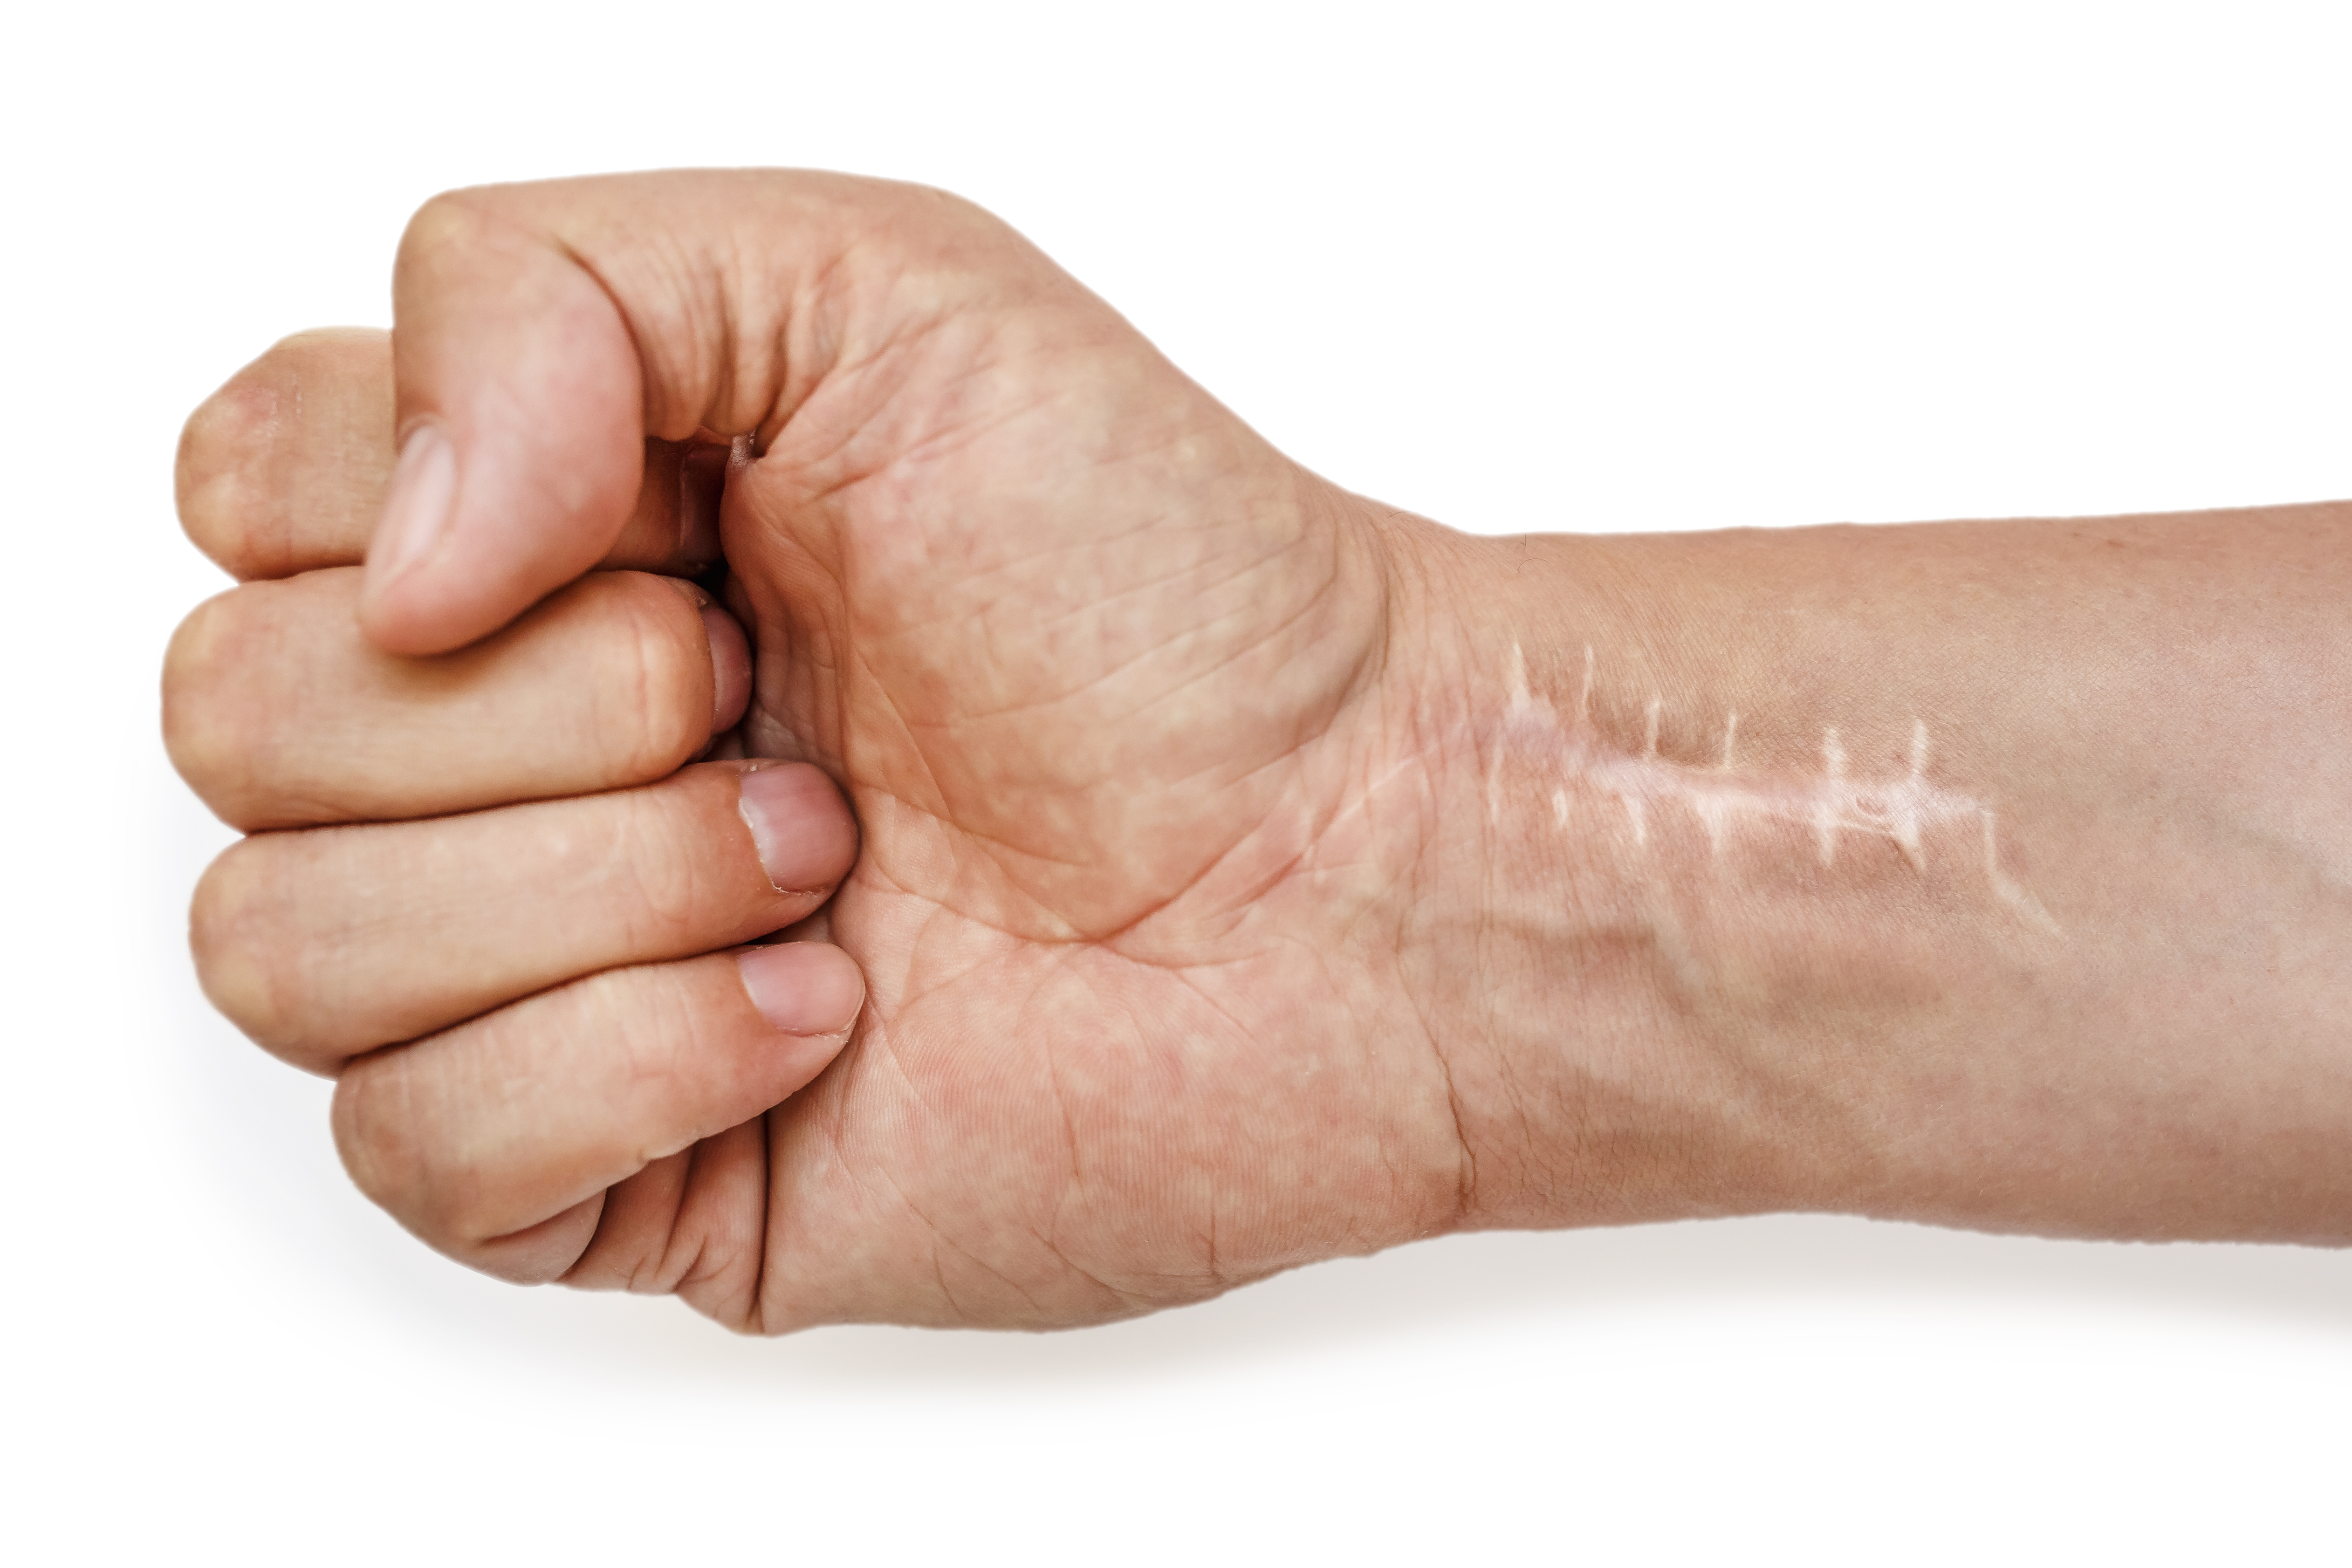 Surgical scar removal Vita Felice New Westminster